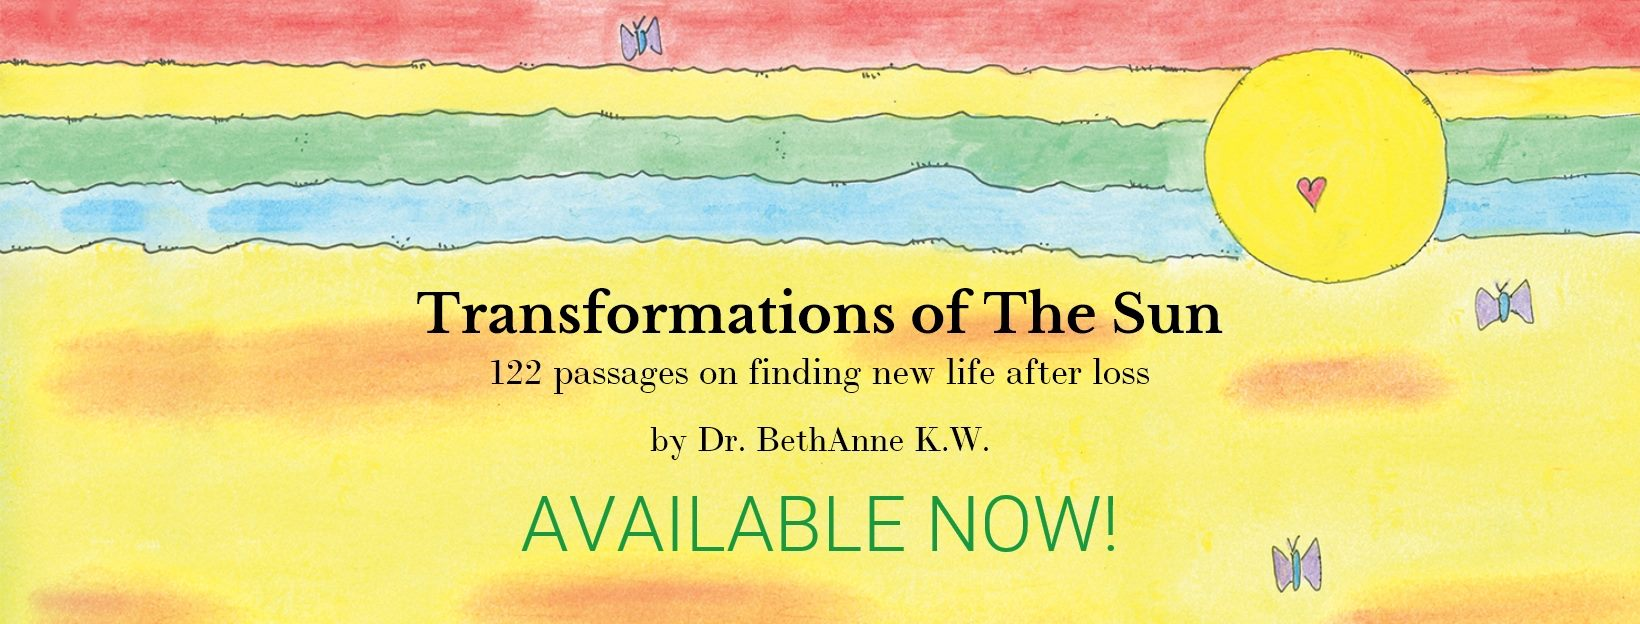 New Book: Transformations Of The Sun